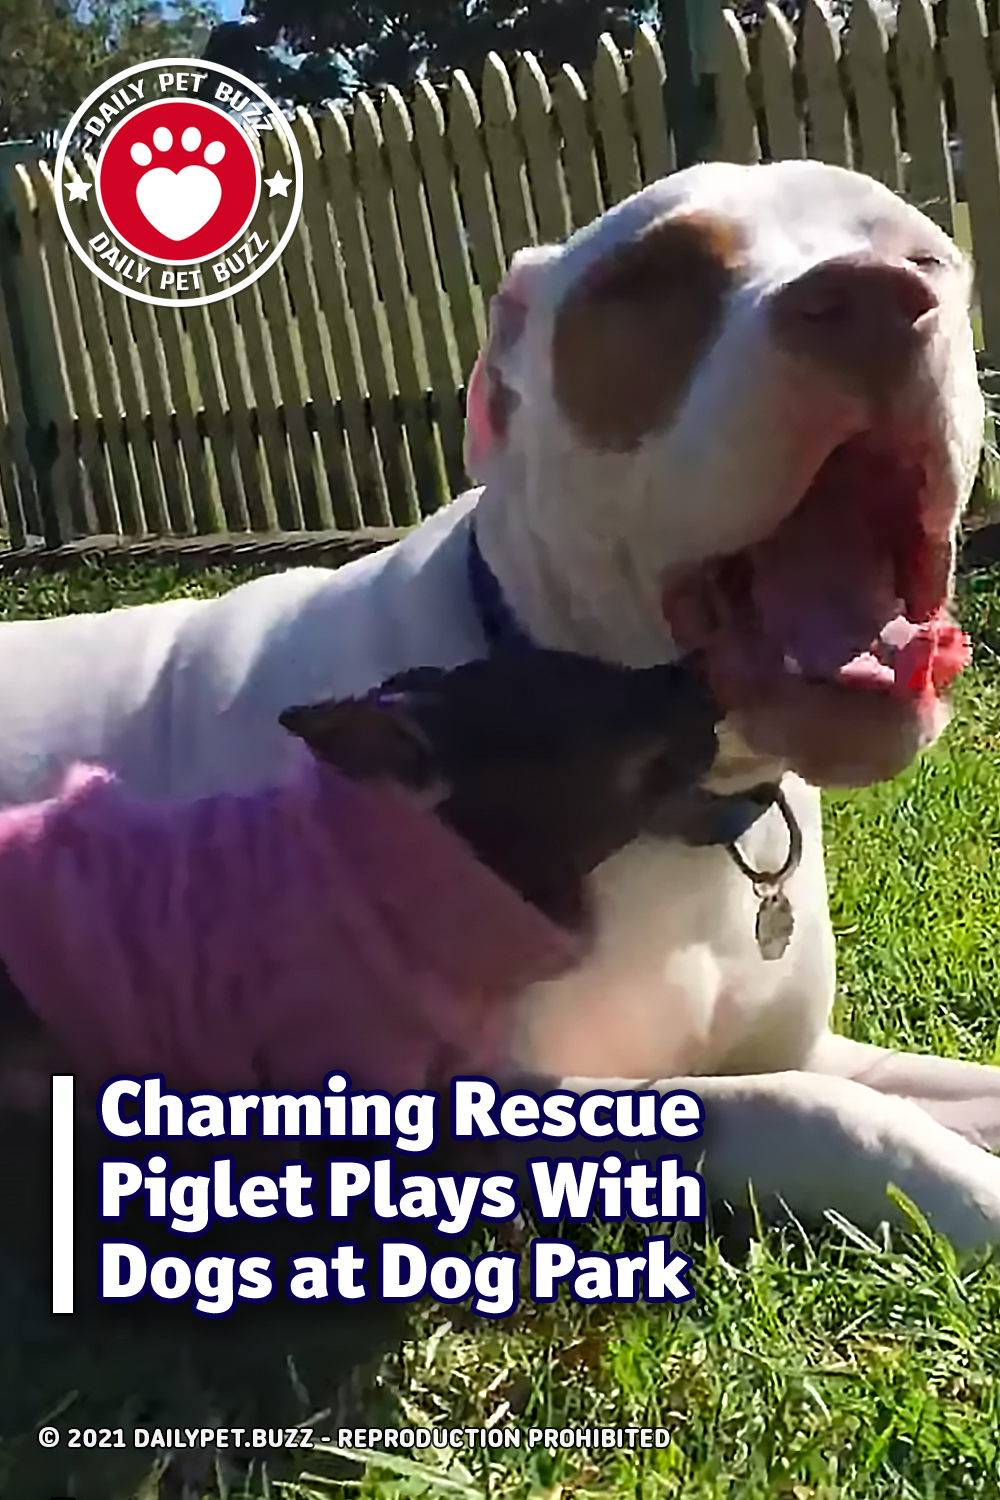 Charming Rescue Piglet Plays With Dogs at Dog Park